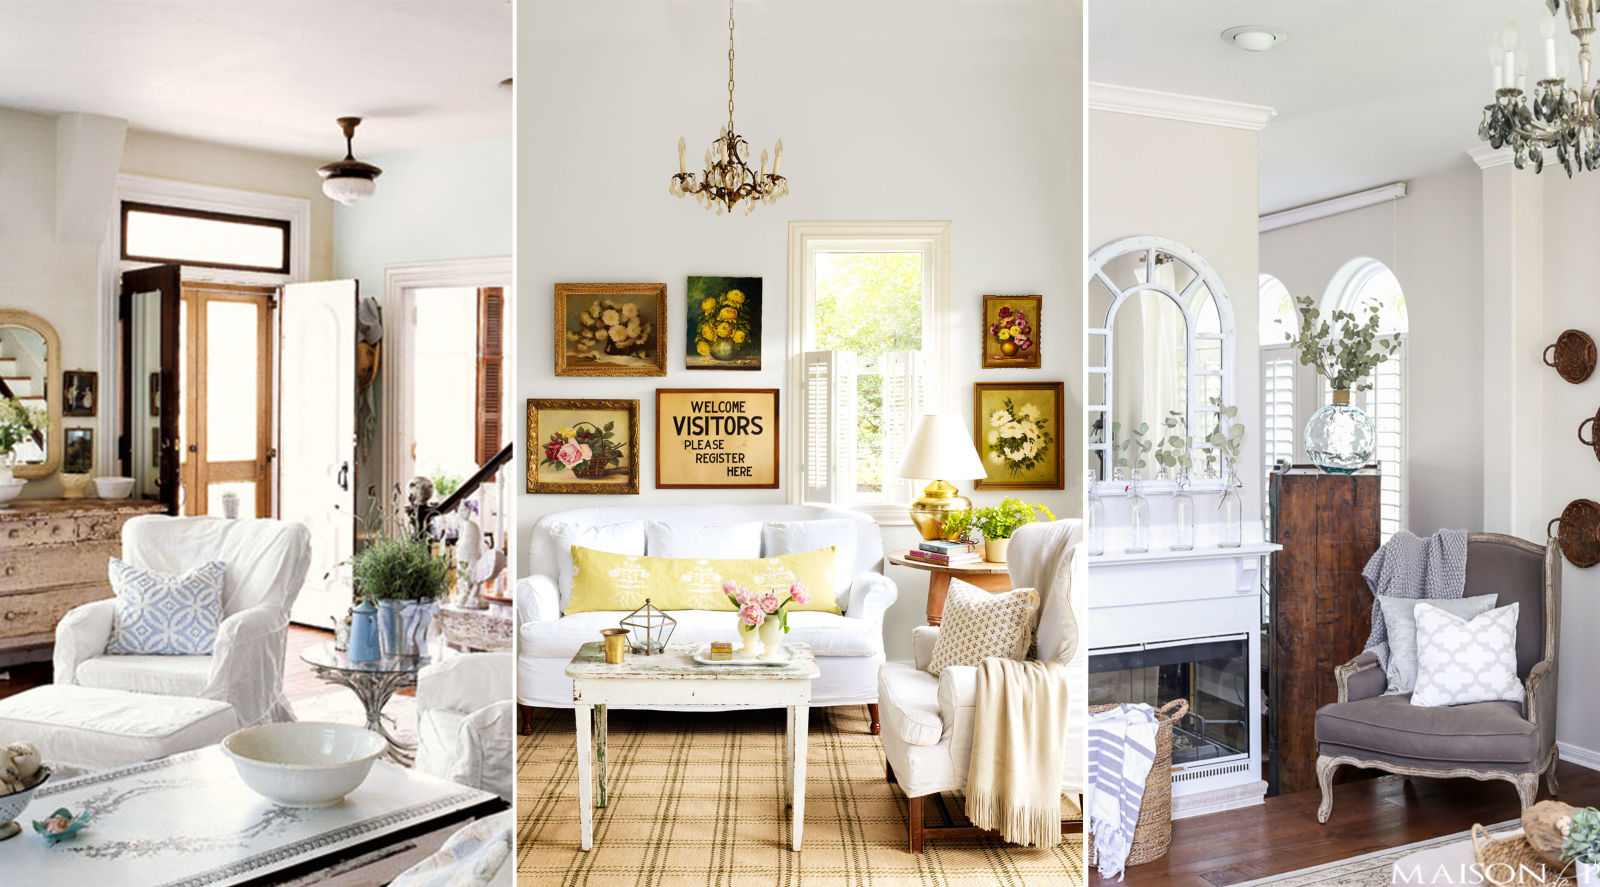 Country chic living room - 10 Shabby Chic Living Room Ideas Shabby Chic Decorating Inspiration For Living Rooms